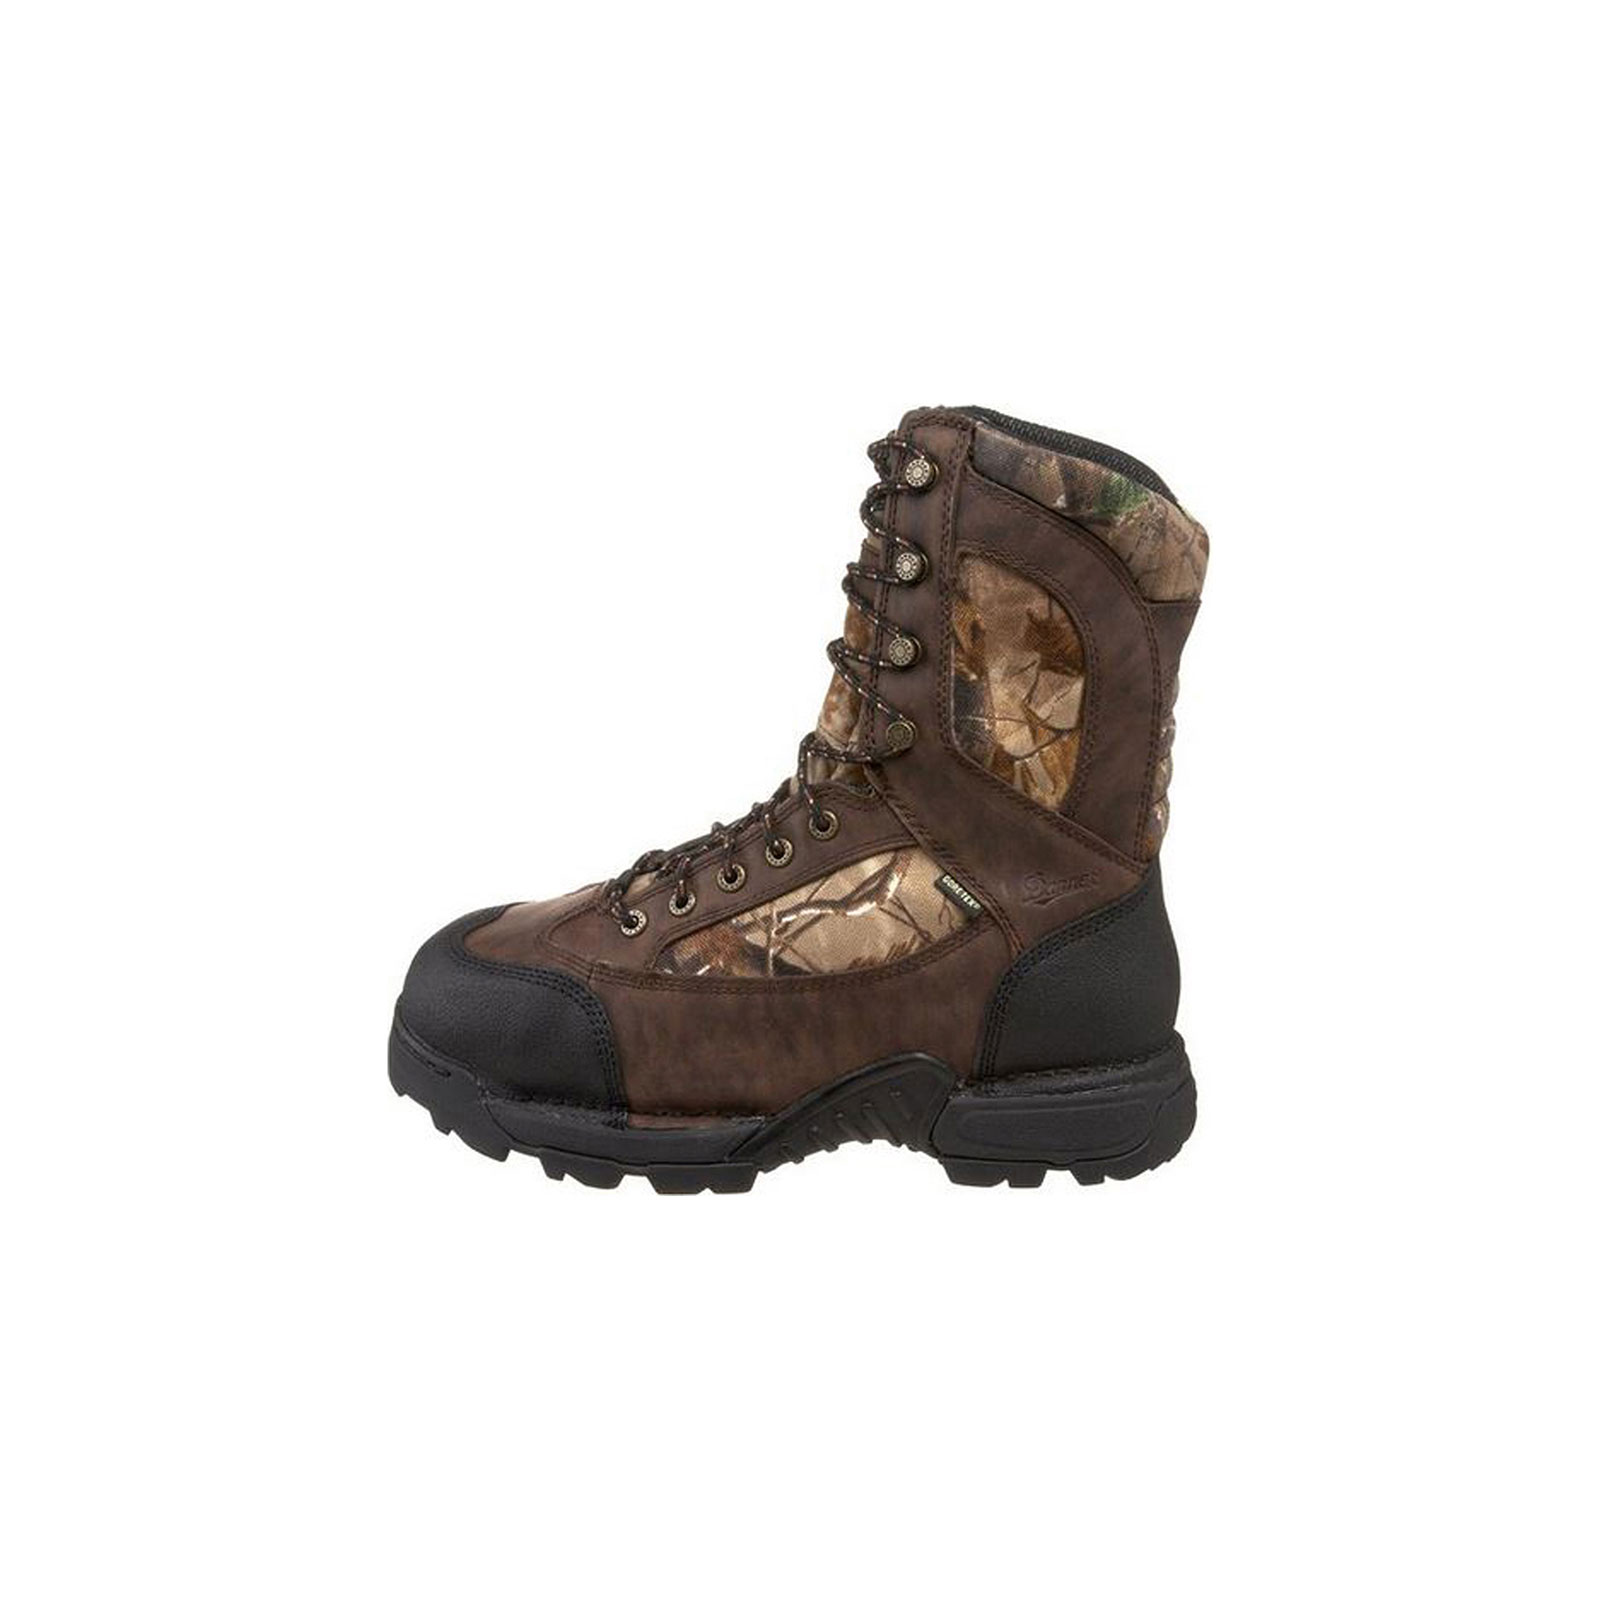 Danner 42288 Mens Pronghorn GTX Realtree AP HD 1200G Hunting Boots